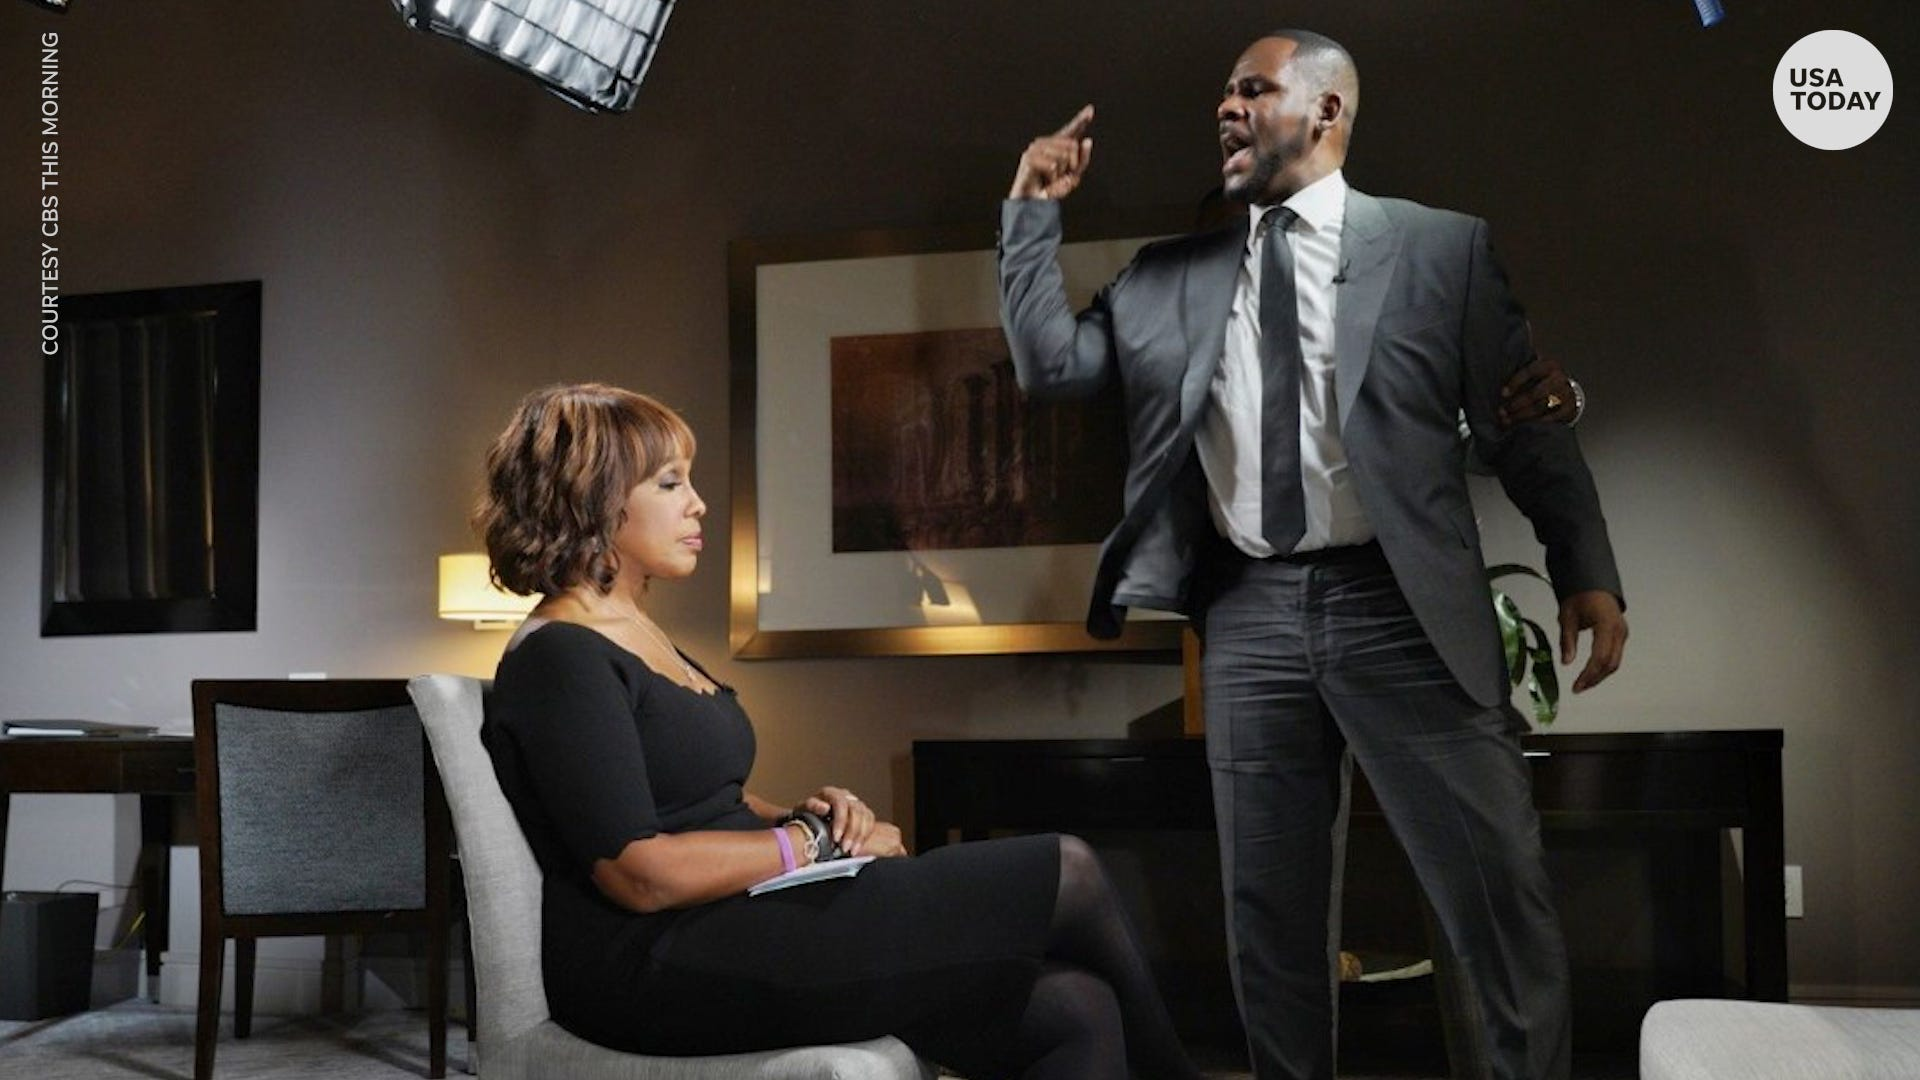 R  Kelly's explosive interview: 'I'm fighting for my f---ing life'